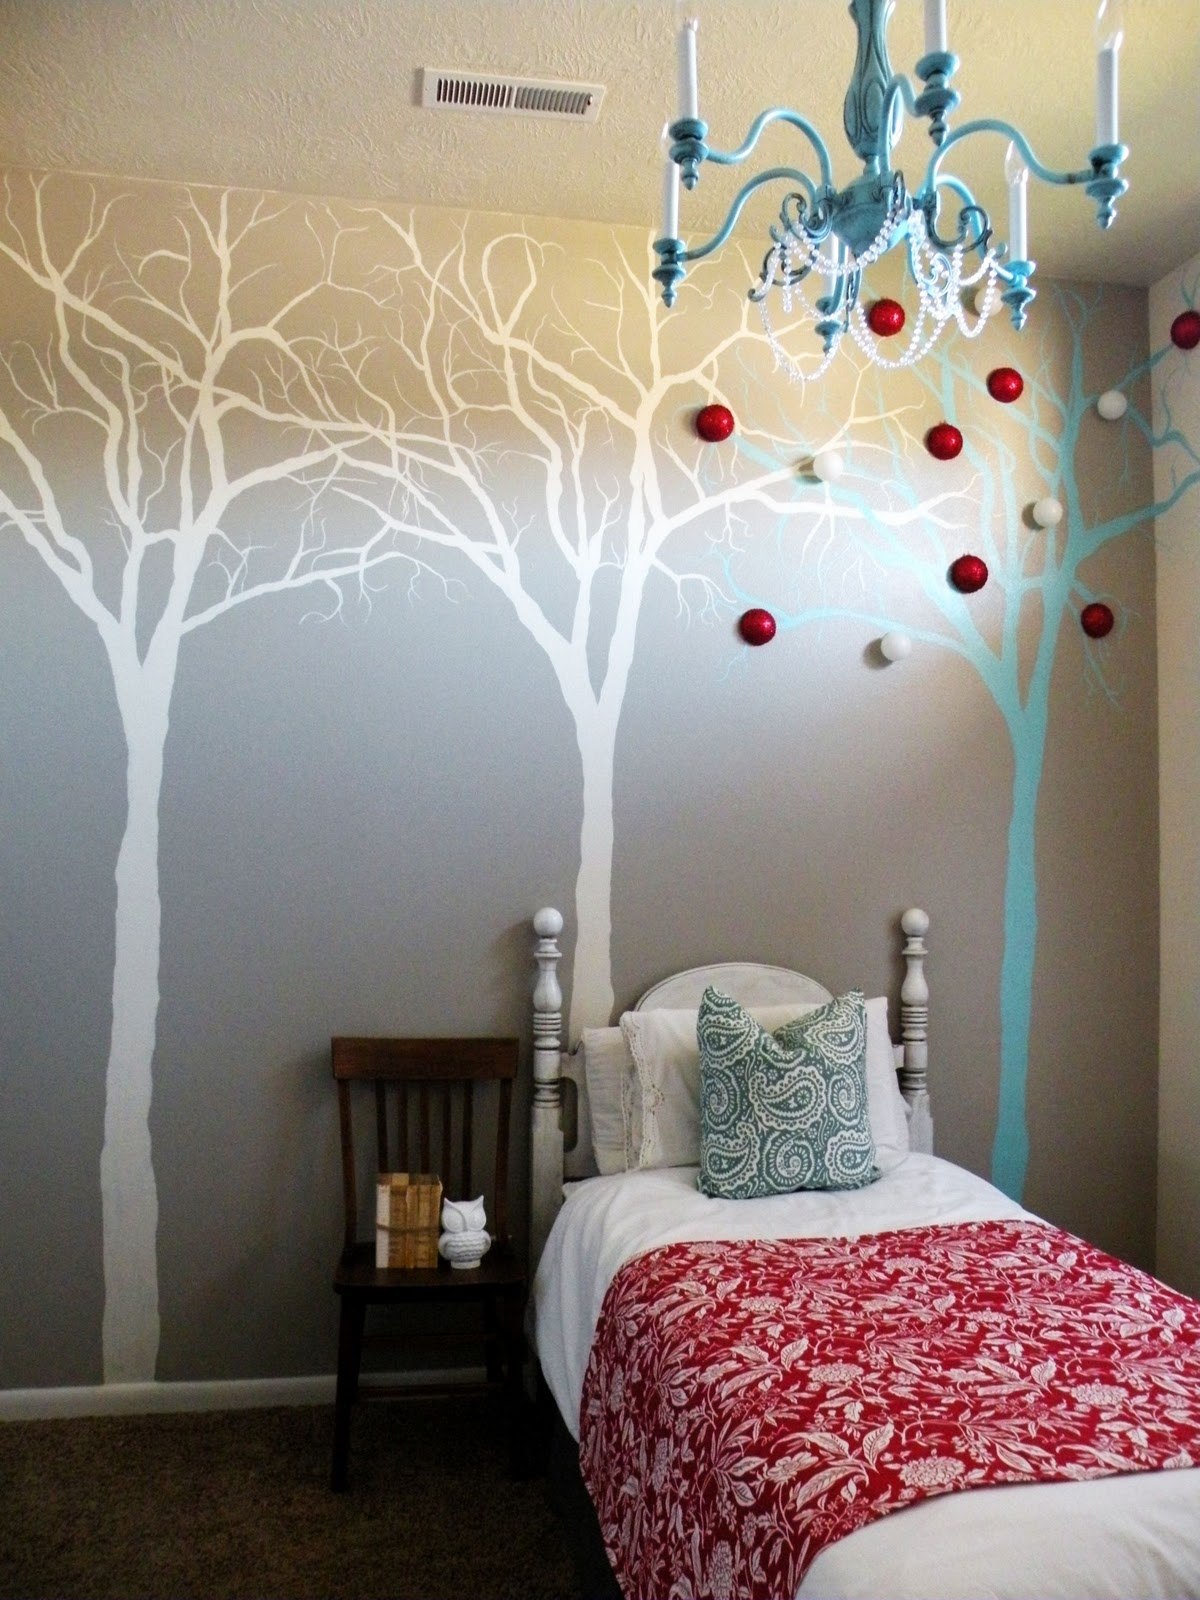 Printable wall murals choice image home wall decoration ideas diy wall murals ideas home design inspirations diy wall murals ideas part 36 printable stone wall amipublicfo Image collections